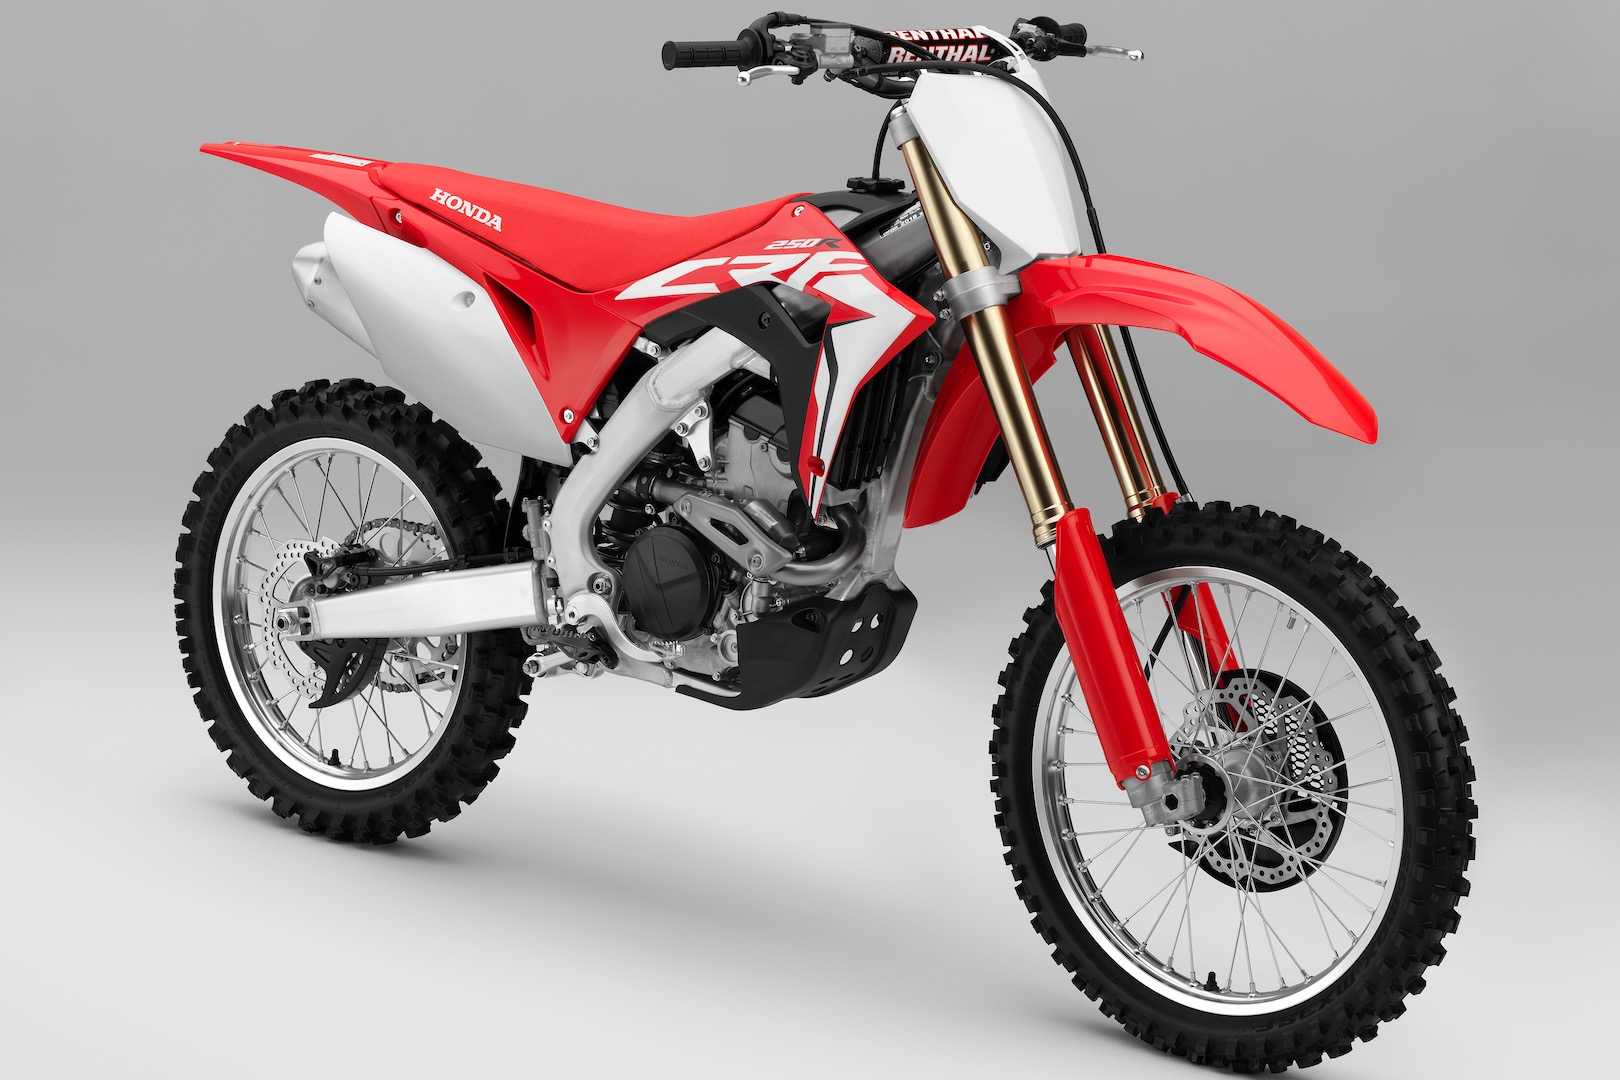 2018 Honda CRF250R preview test